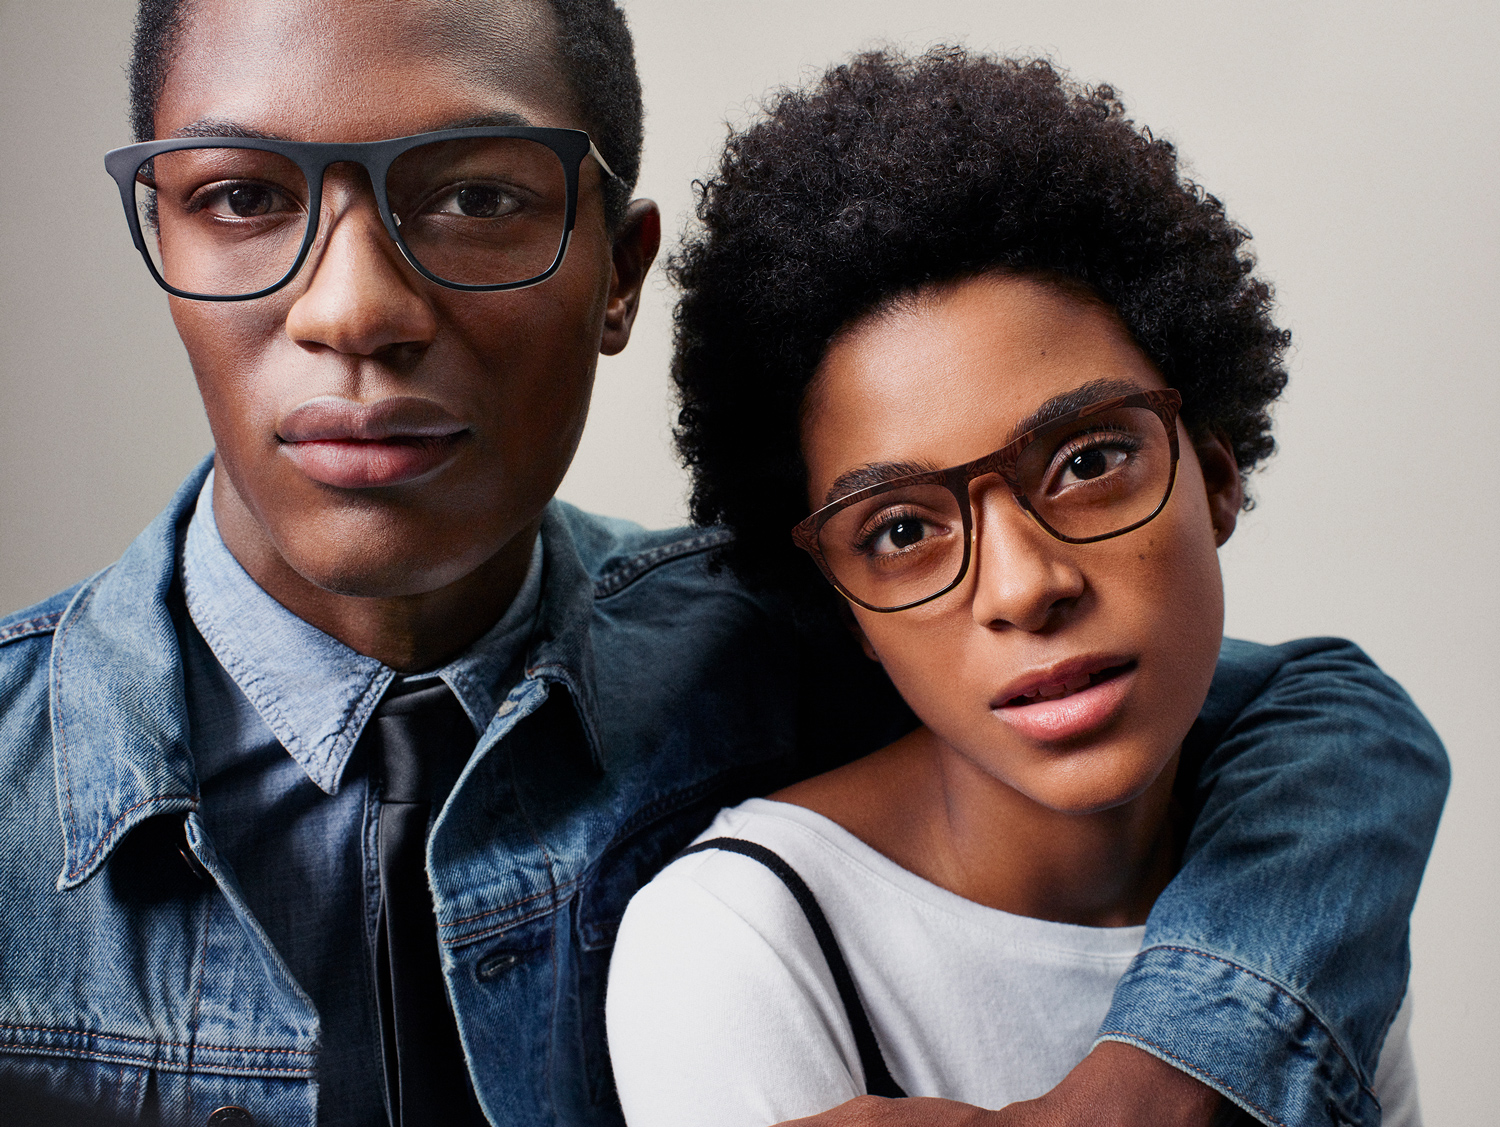 Shot_06_Couple_Eyeglasses_Cassady_MarbledWalnut_Archer_JetBlack_Alecia_Hamid_050